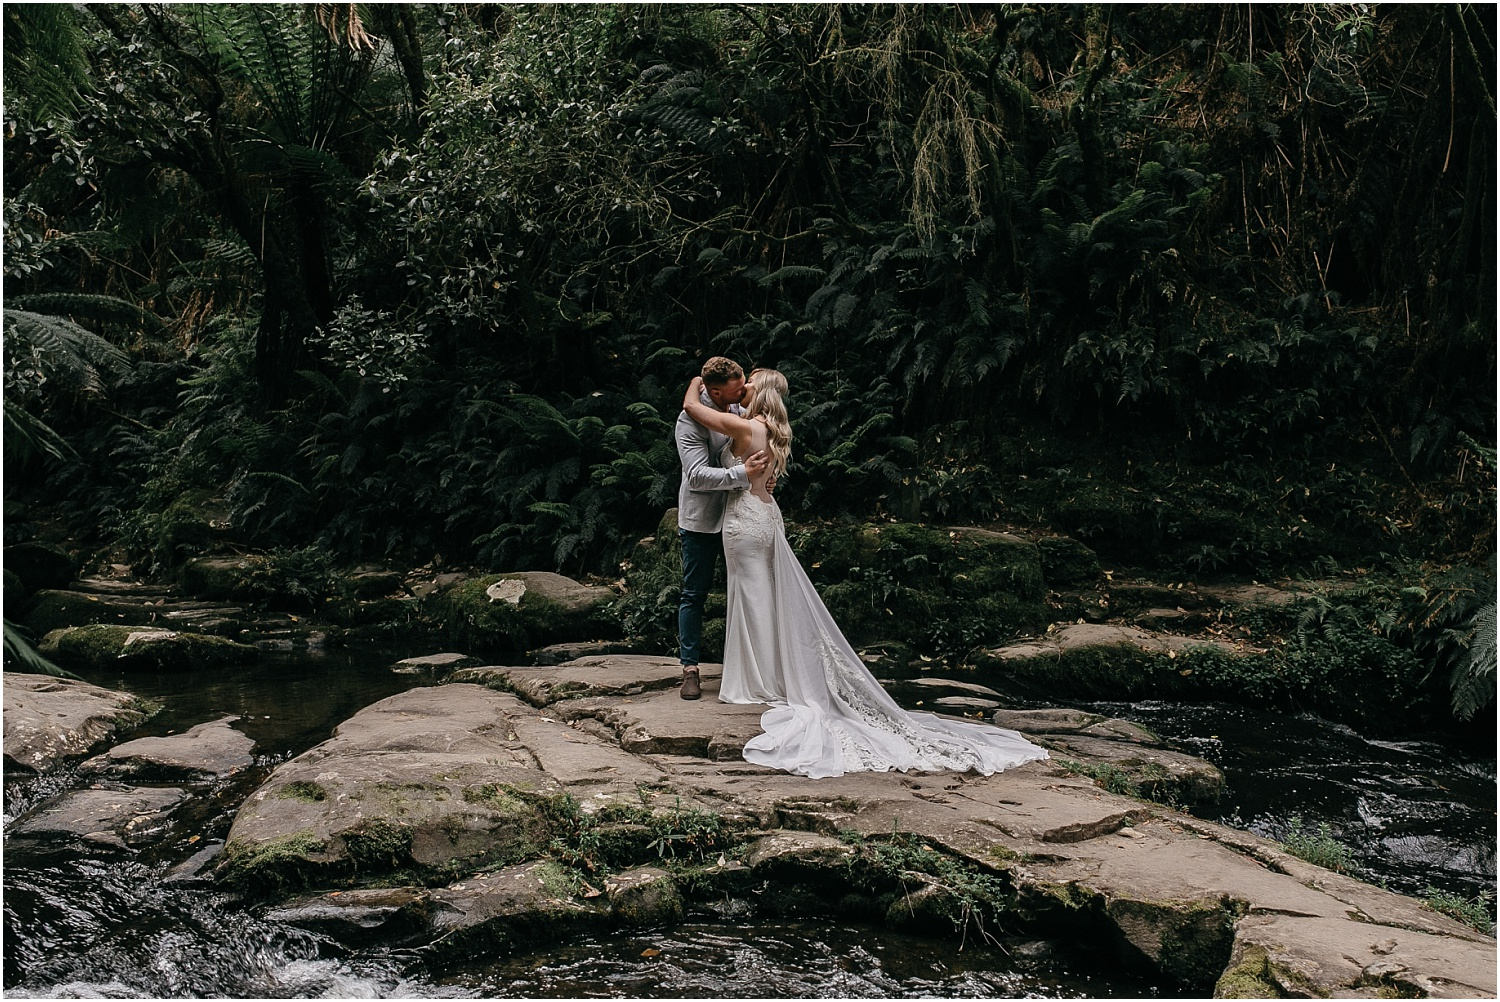 Renee and Ash's real elopement in Lorne on the Great Ocean Roadwith the ceremony at erskin falls._0085.jpg